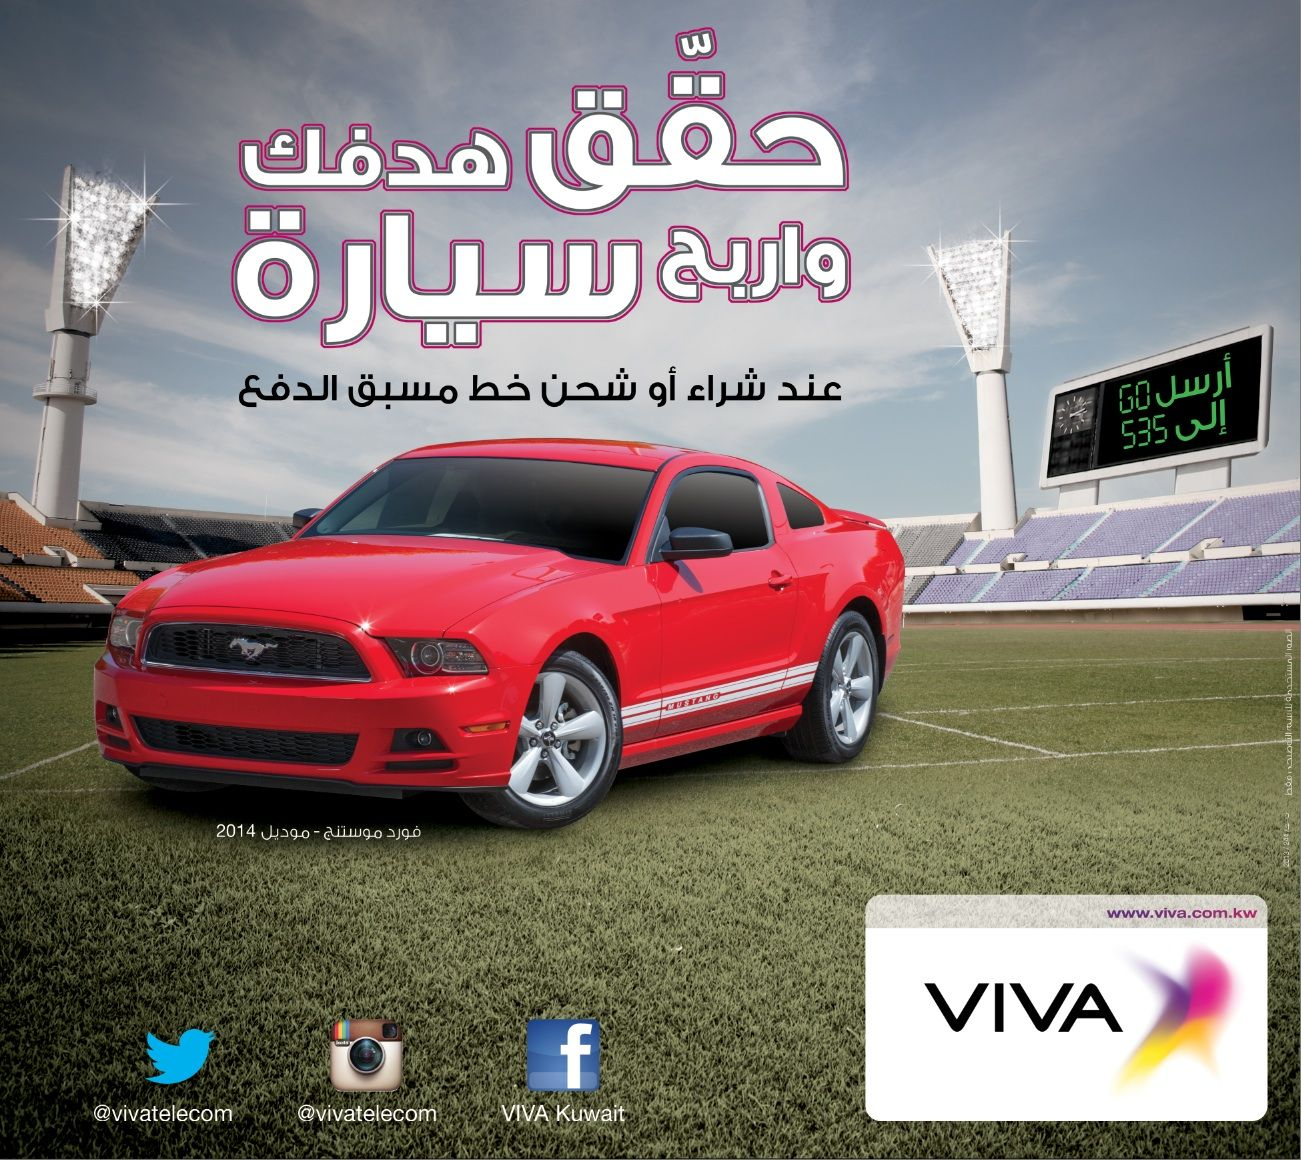 VIVA Announces the Winners of the Ford Mustang Coupe in the